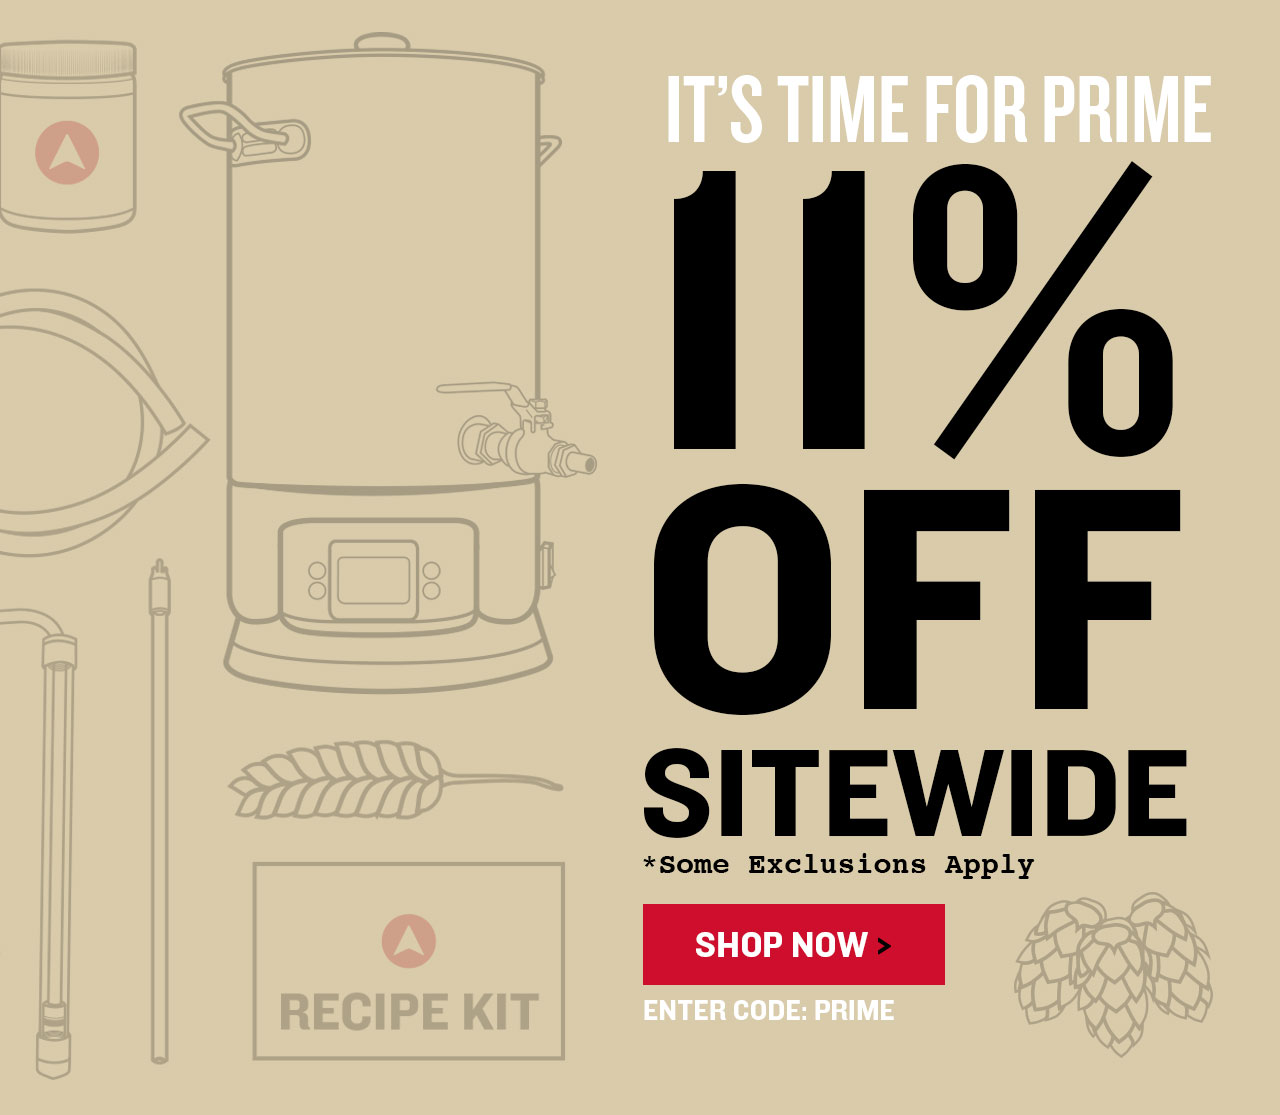 11% Off Sitewide for Prime Day. Promo Code: PRIMEDAY